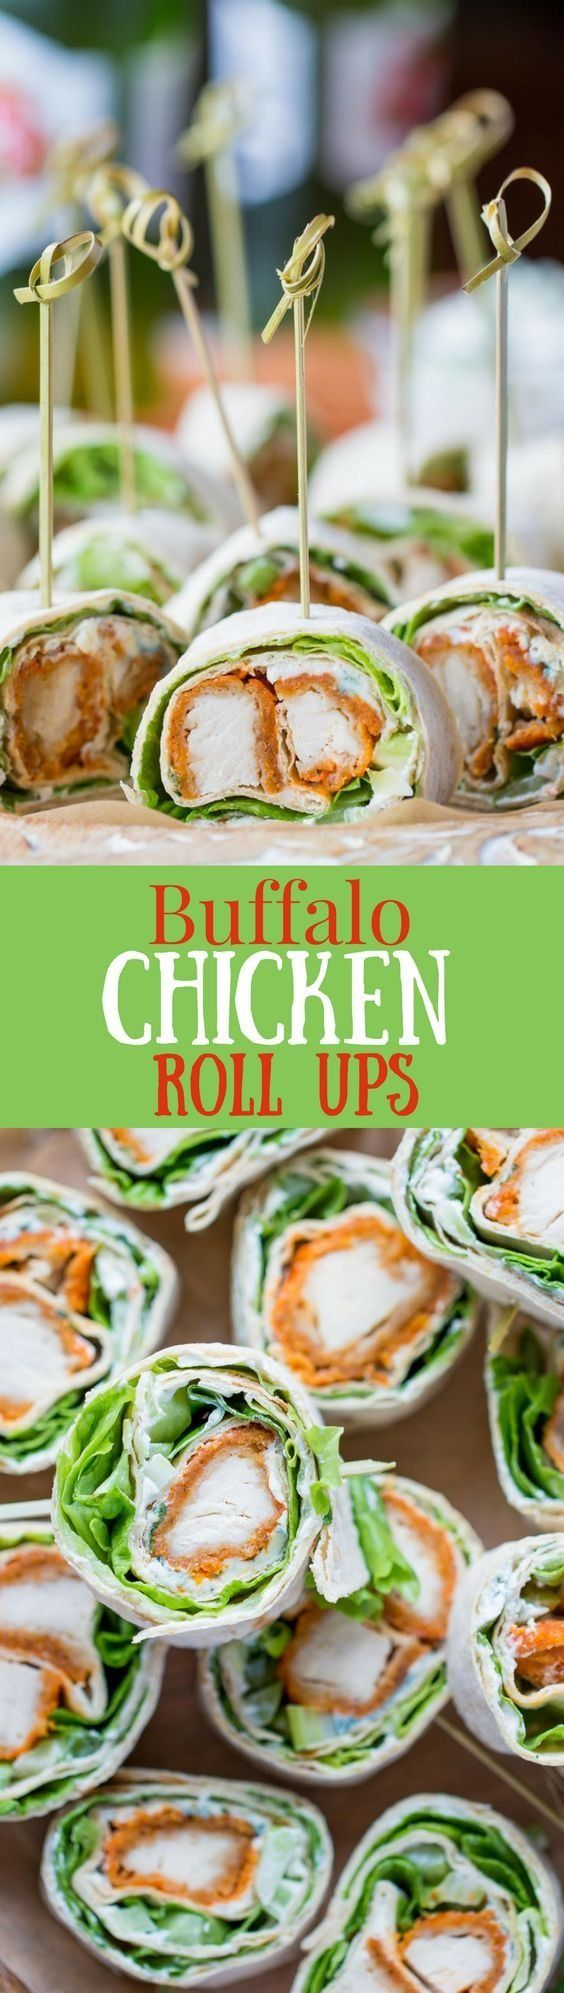 Buffalo chicken roll ups are a delicious appetizer.